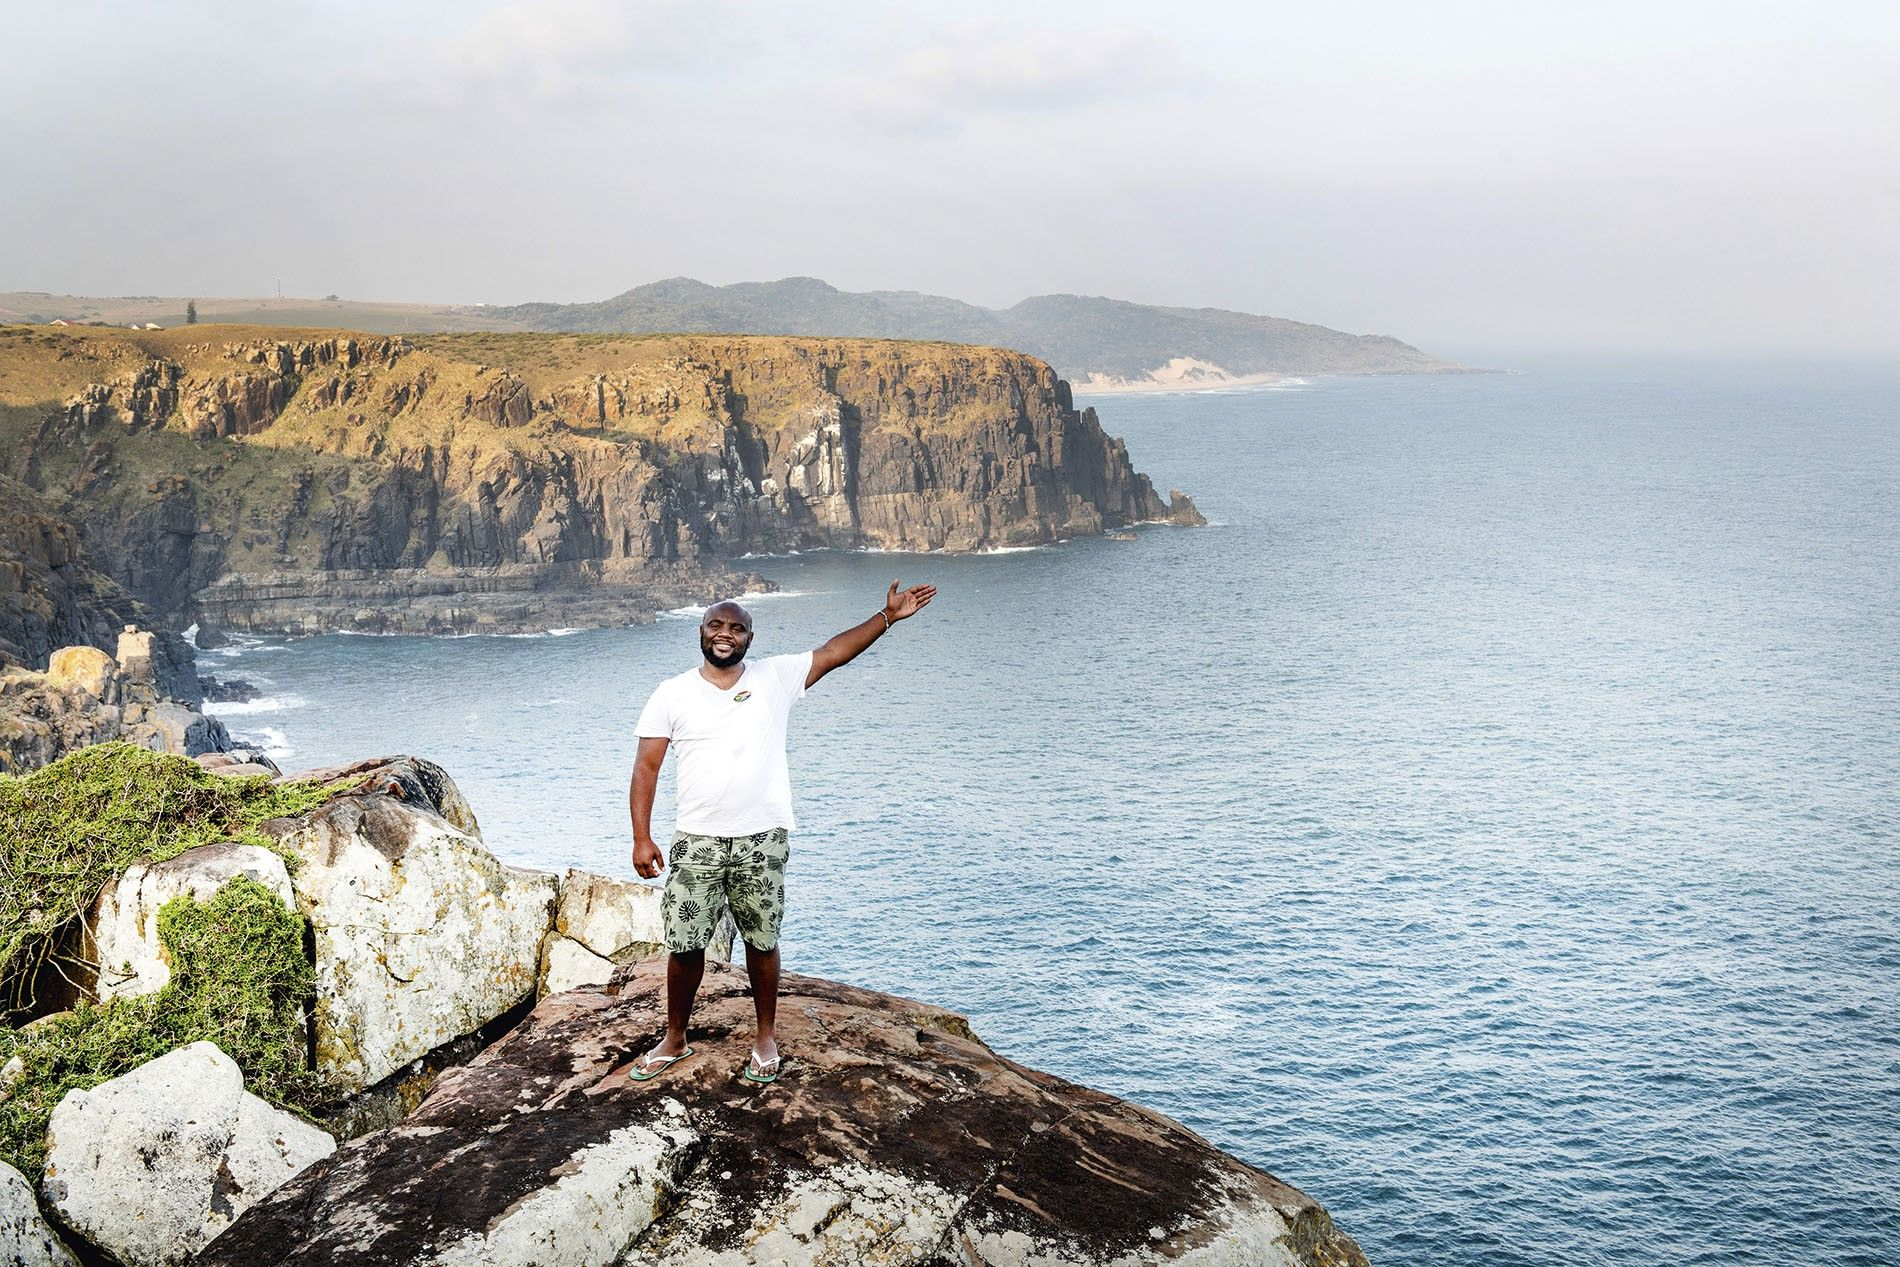 South Africa: Welcome to the really Wild Coast